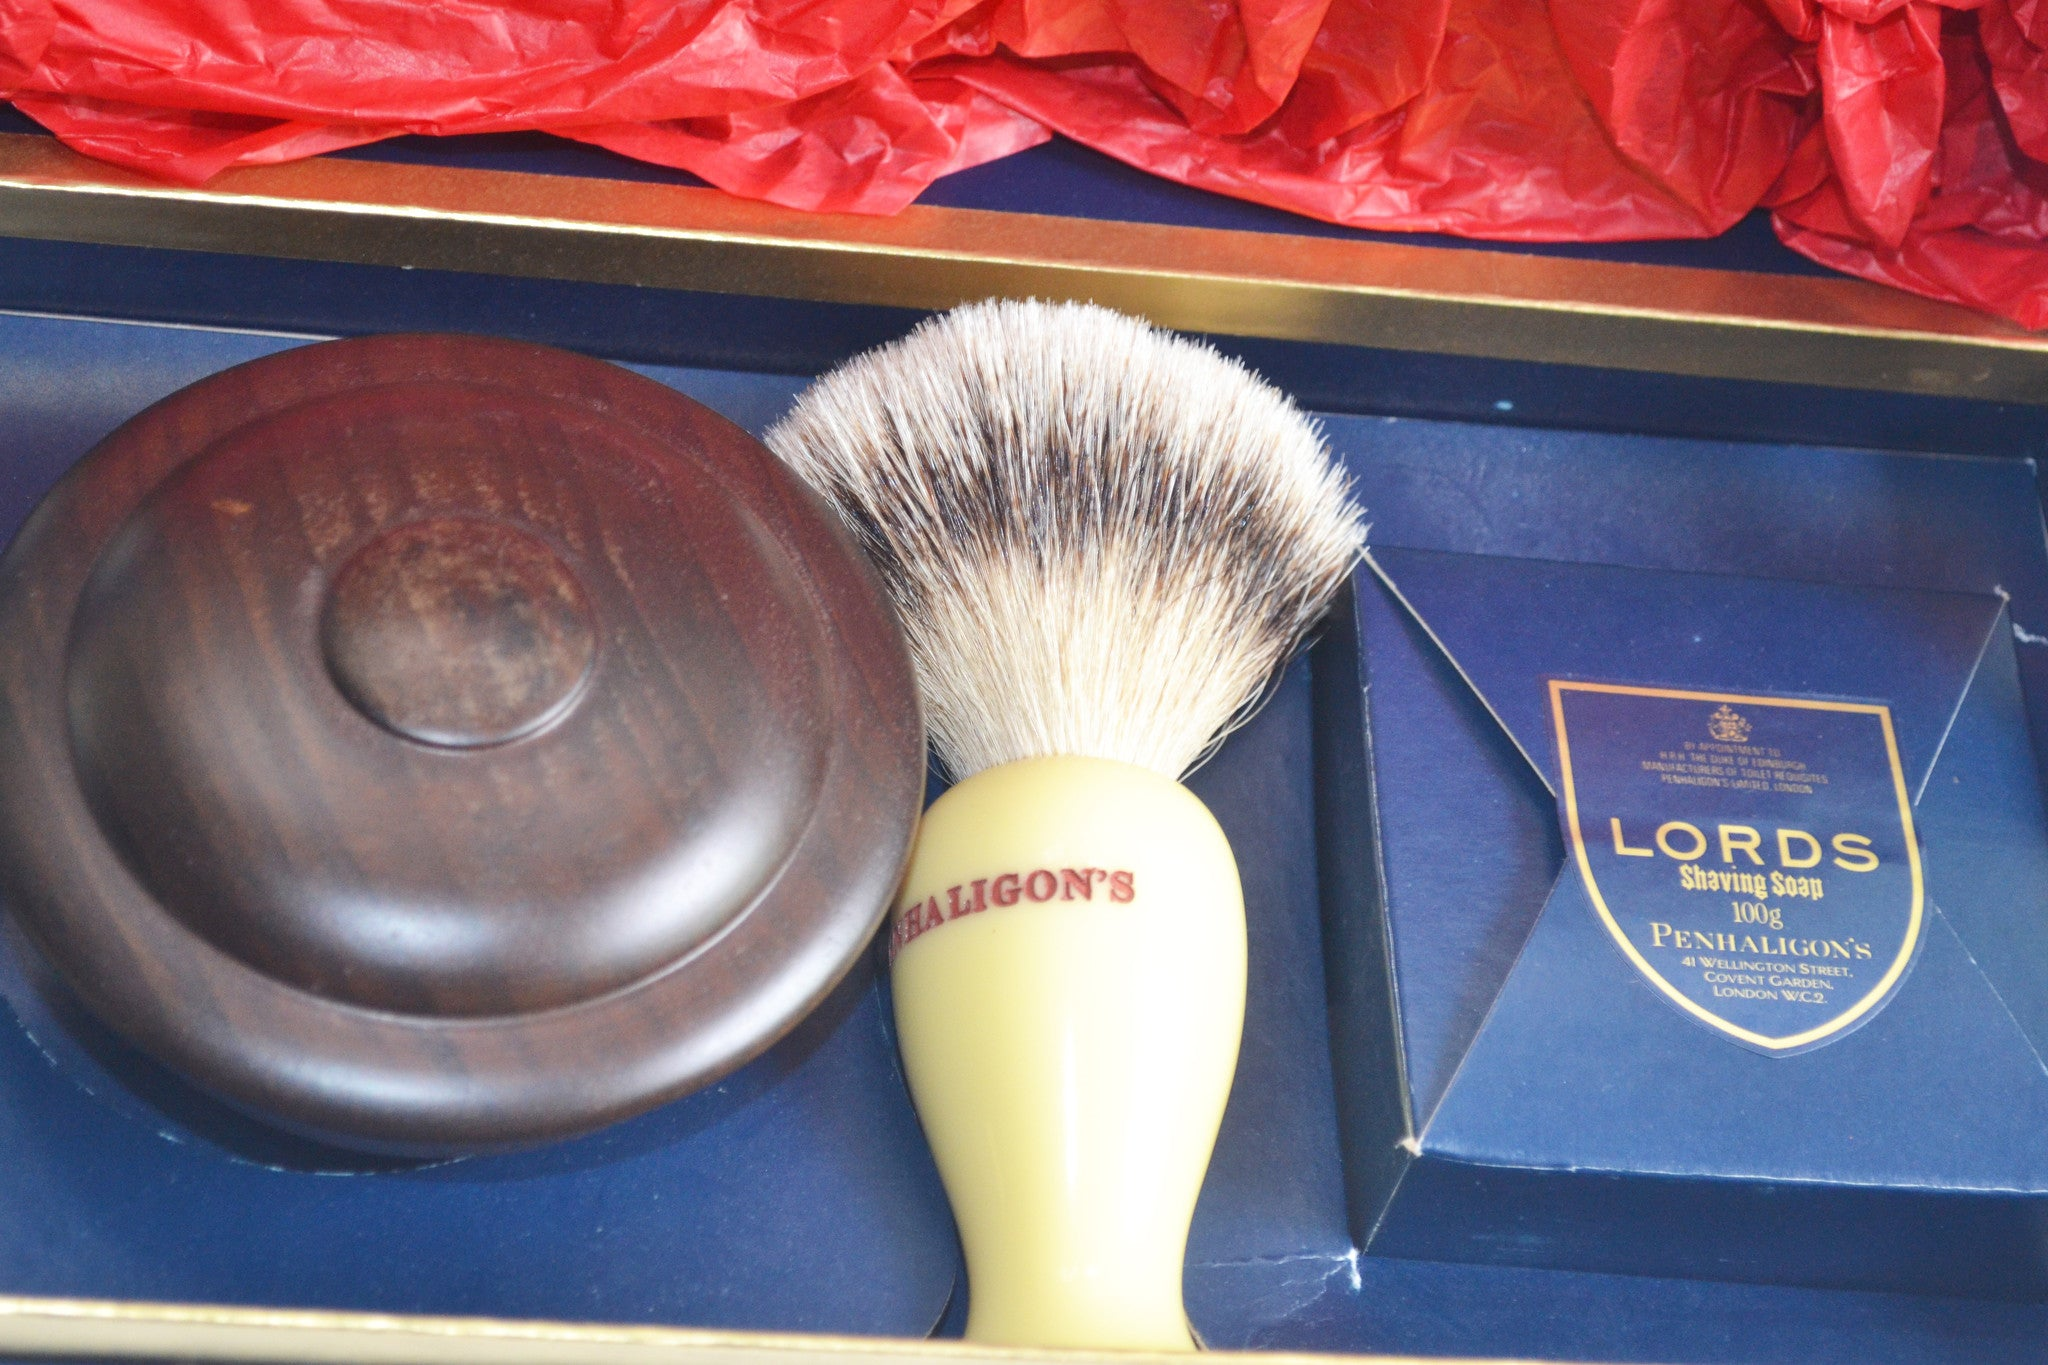 Penhaligon's Lords Shaving Set